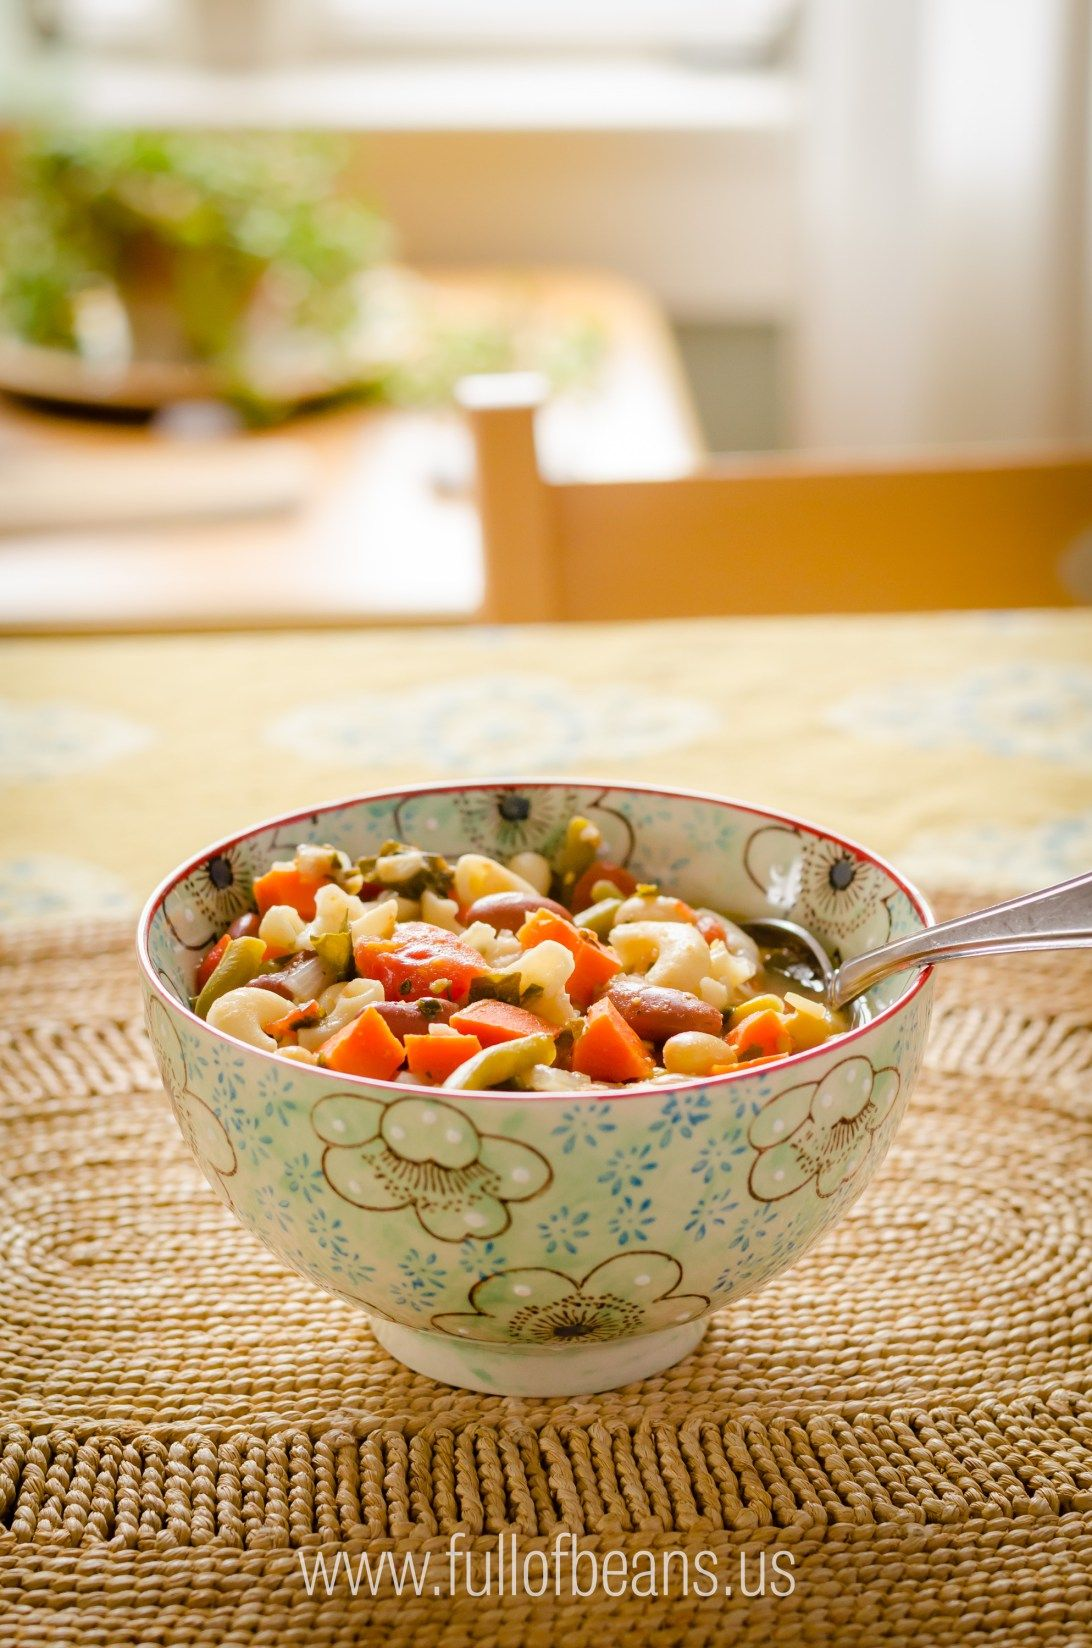 Vegan soup that everyone will love. This gluten-free, vegan minestrone soup is foolproof and quick. Make it tonight!